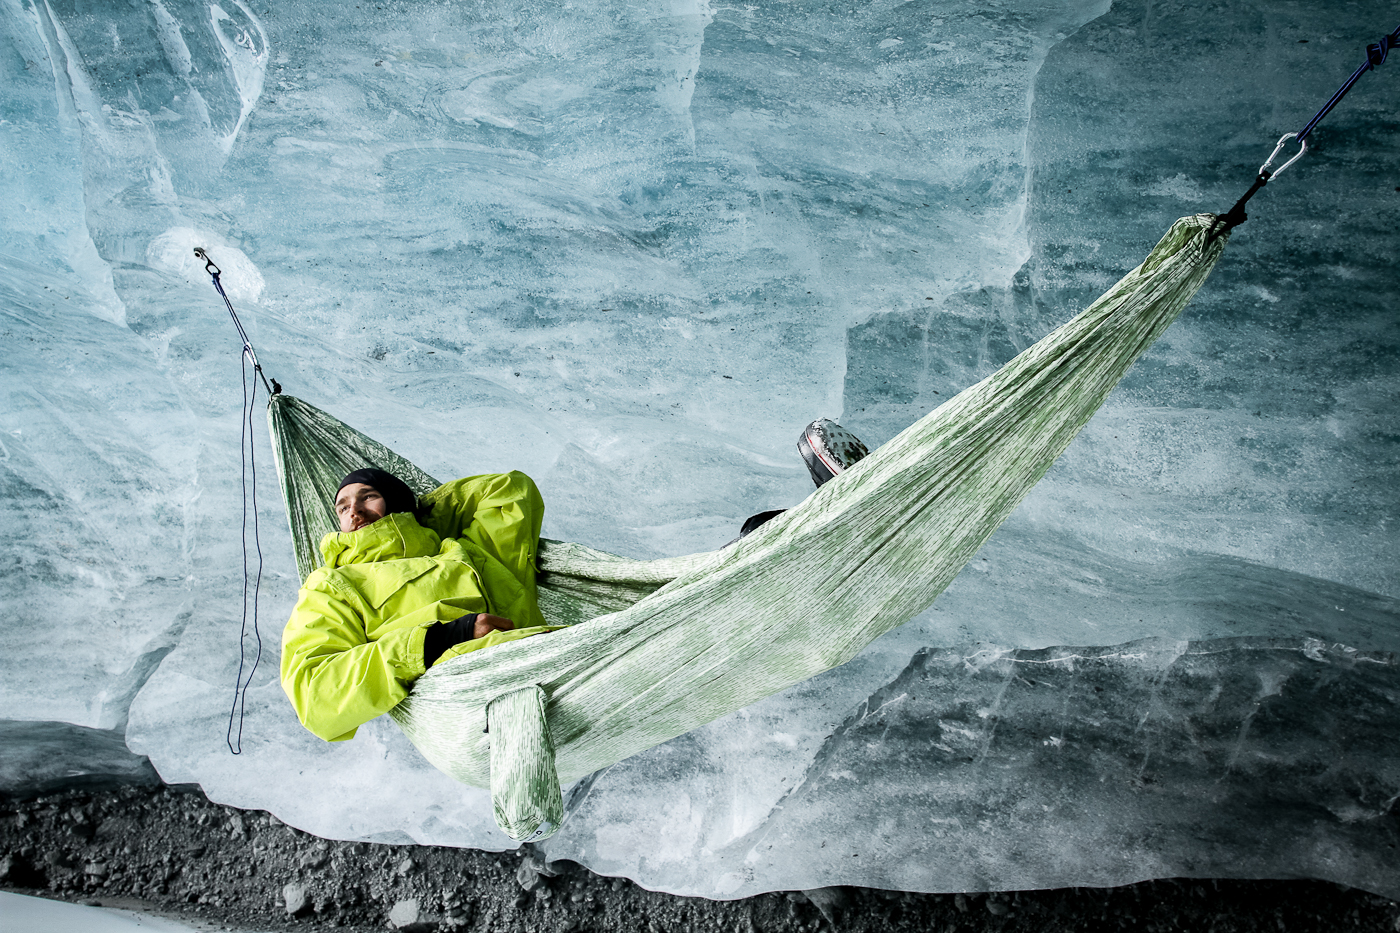 Grand Trunk Winter Hammock - Quick Tips: Stay Warm When Winter Hammocking